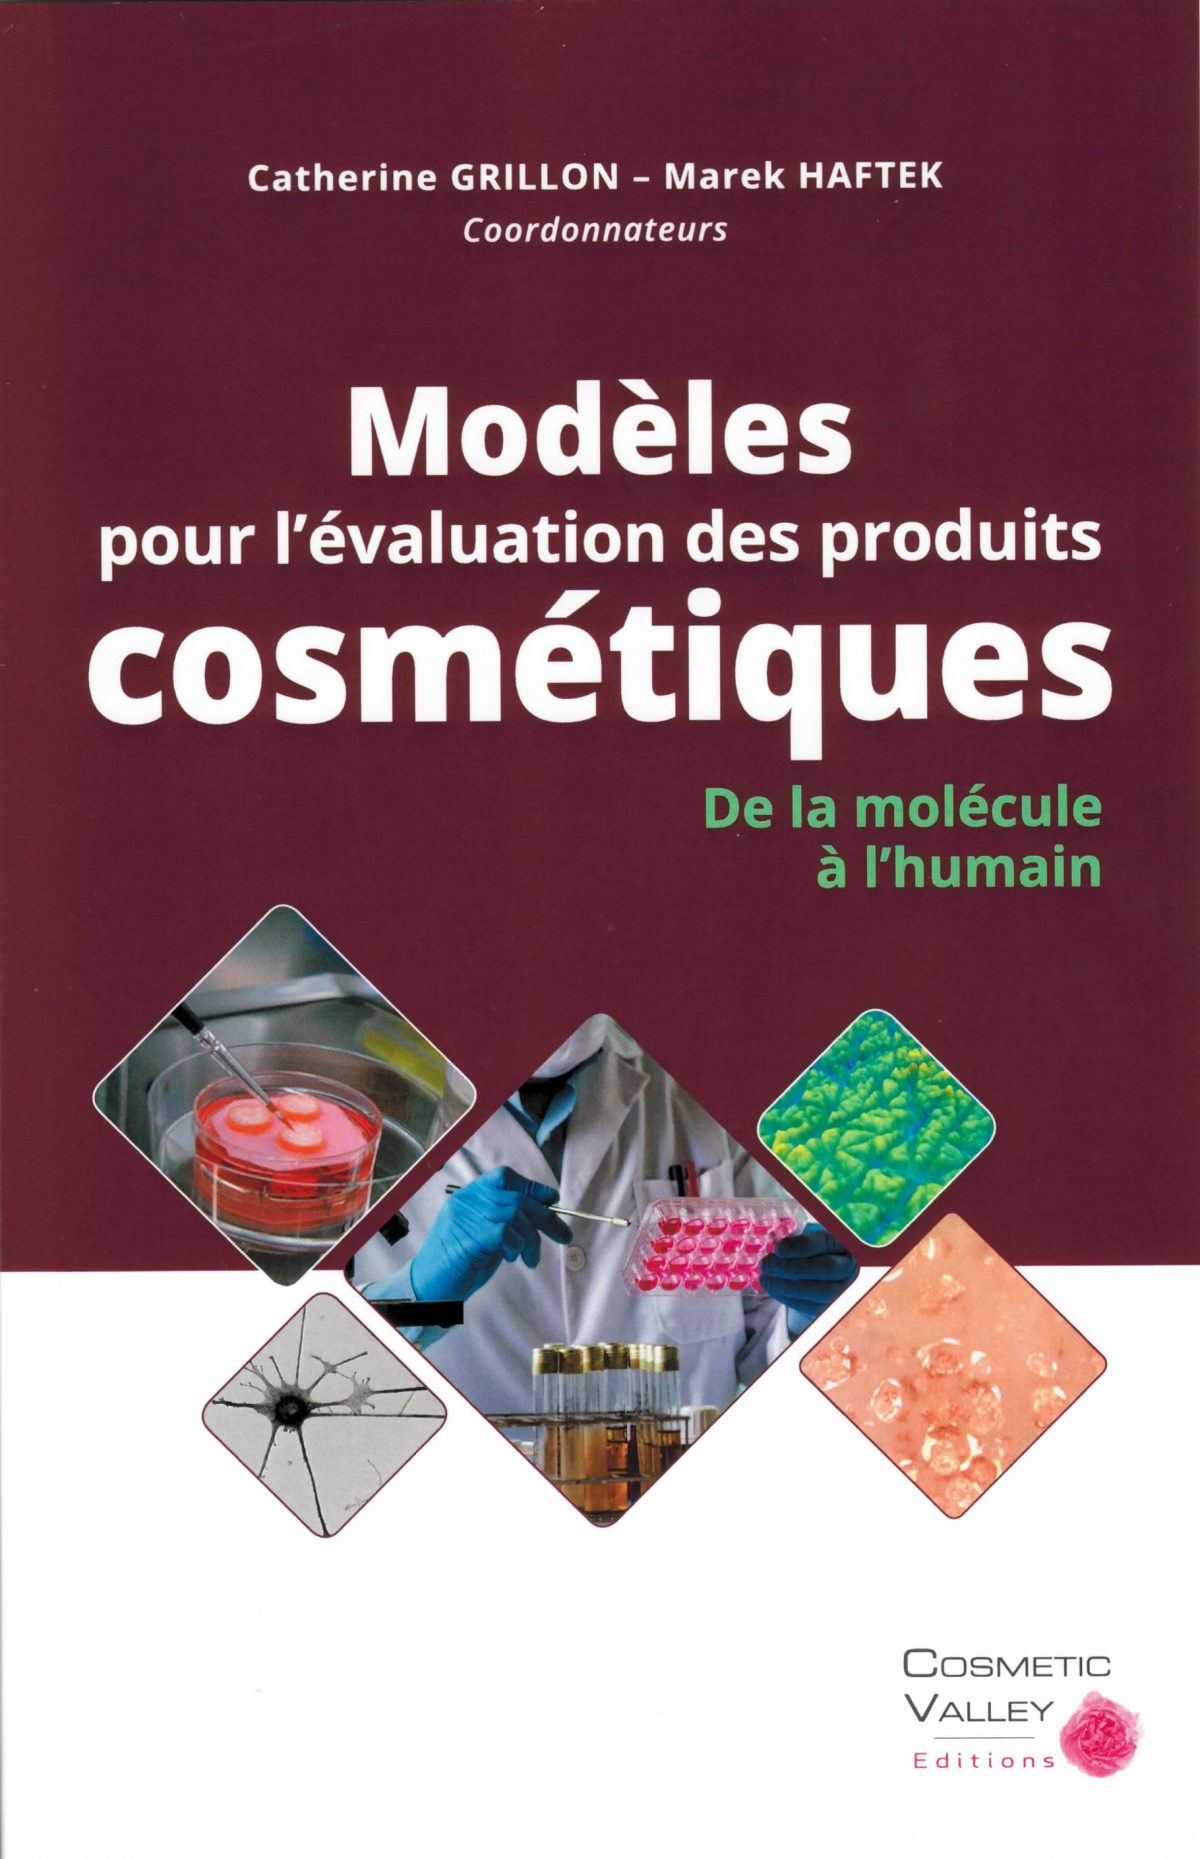 New models to predict and study the effects of cosmetic compounds